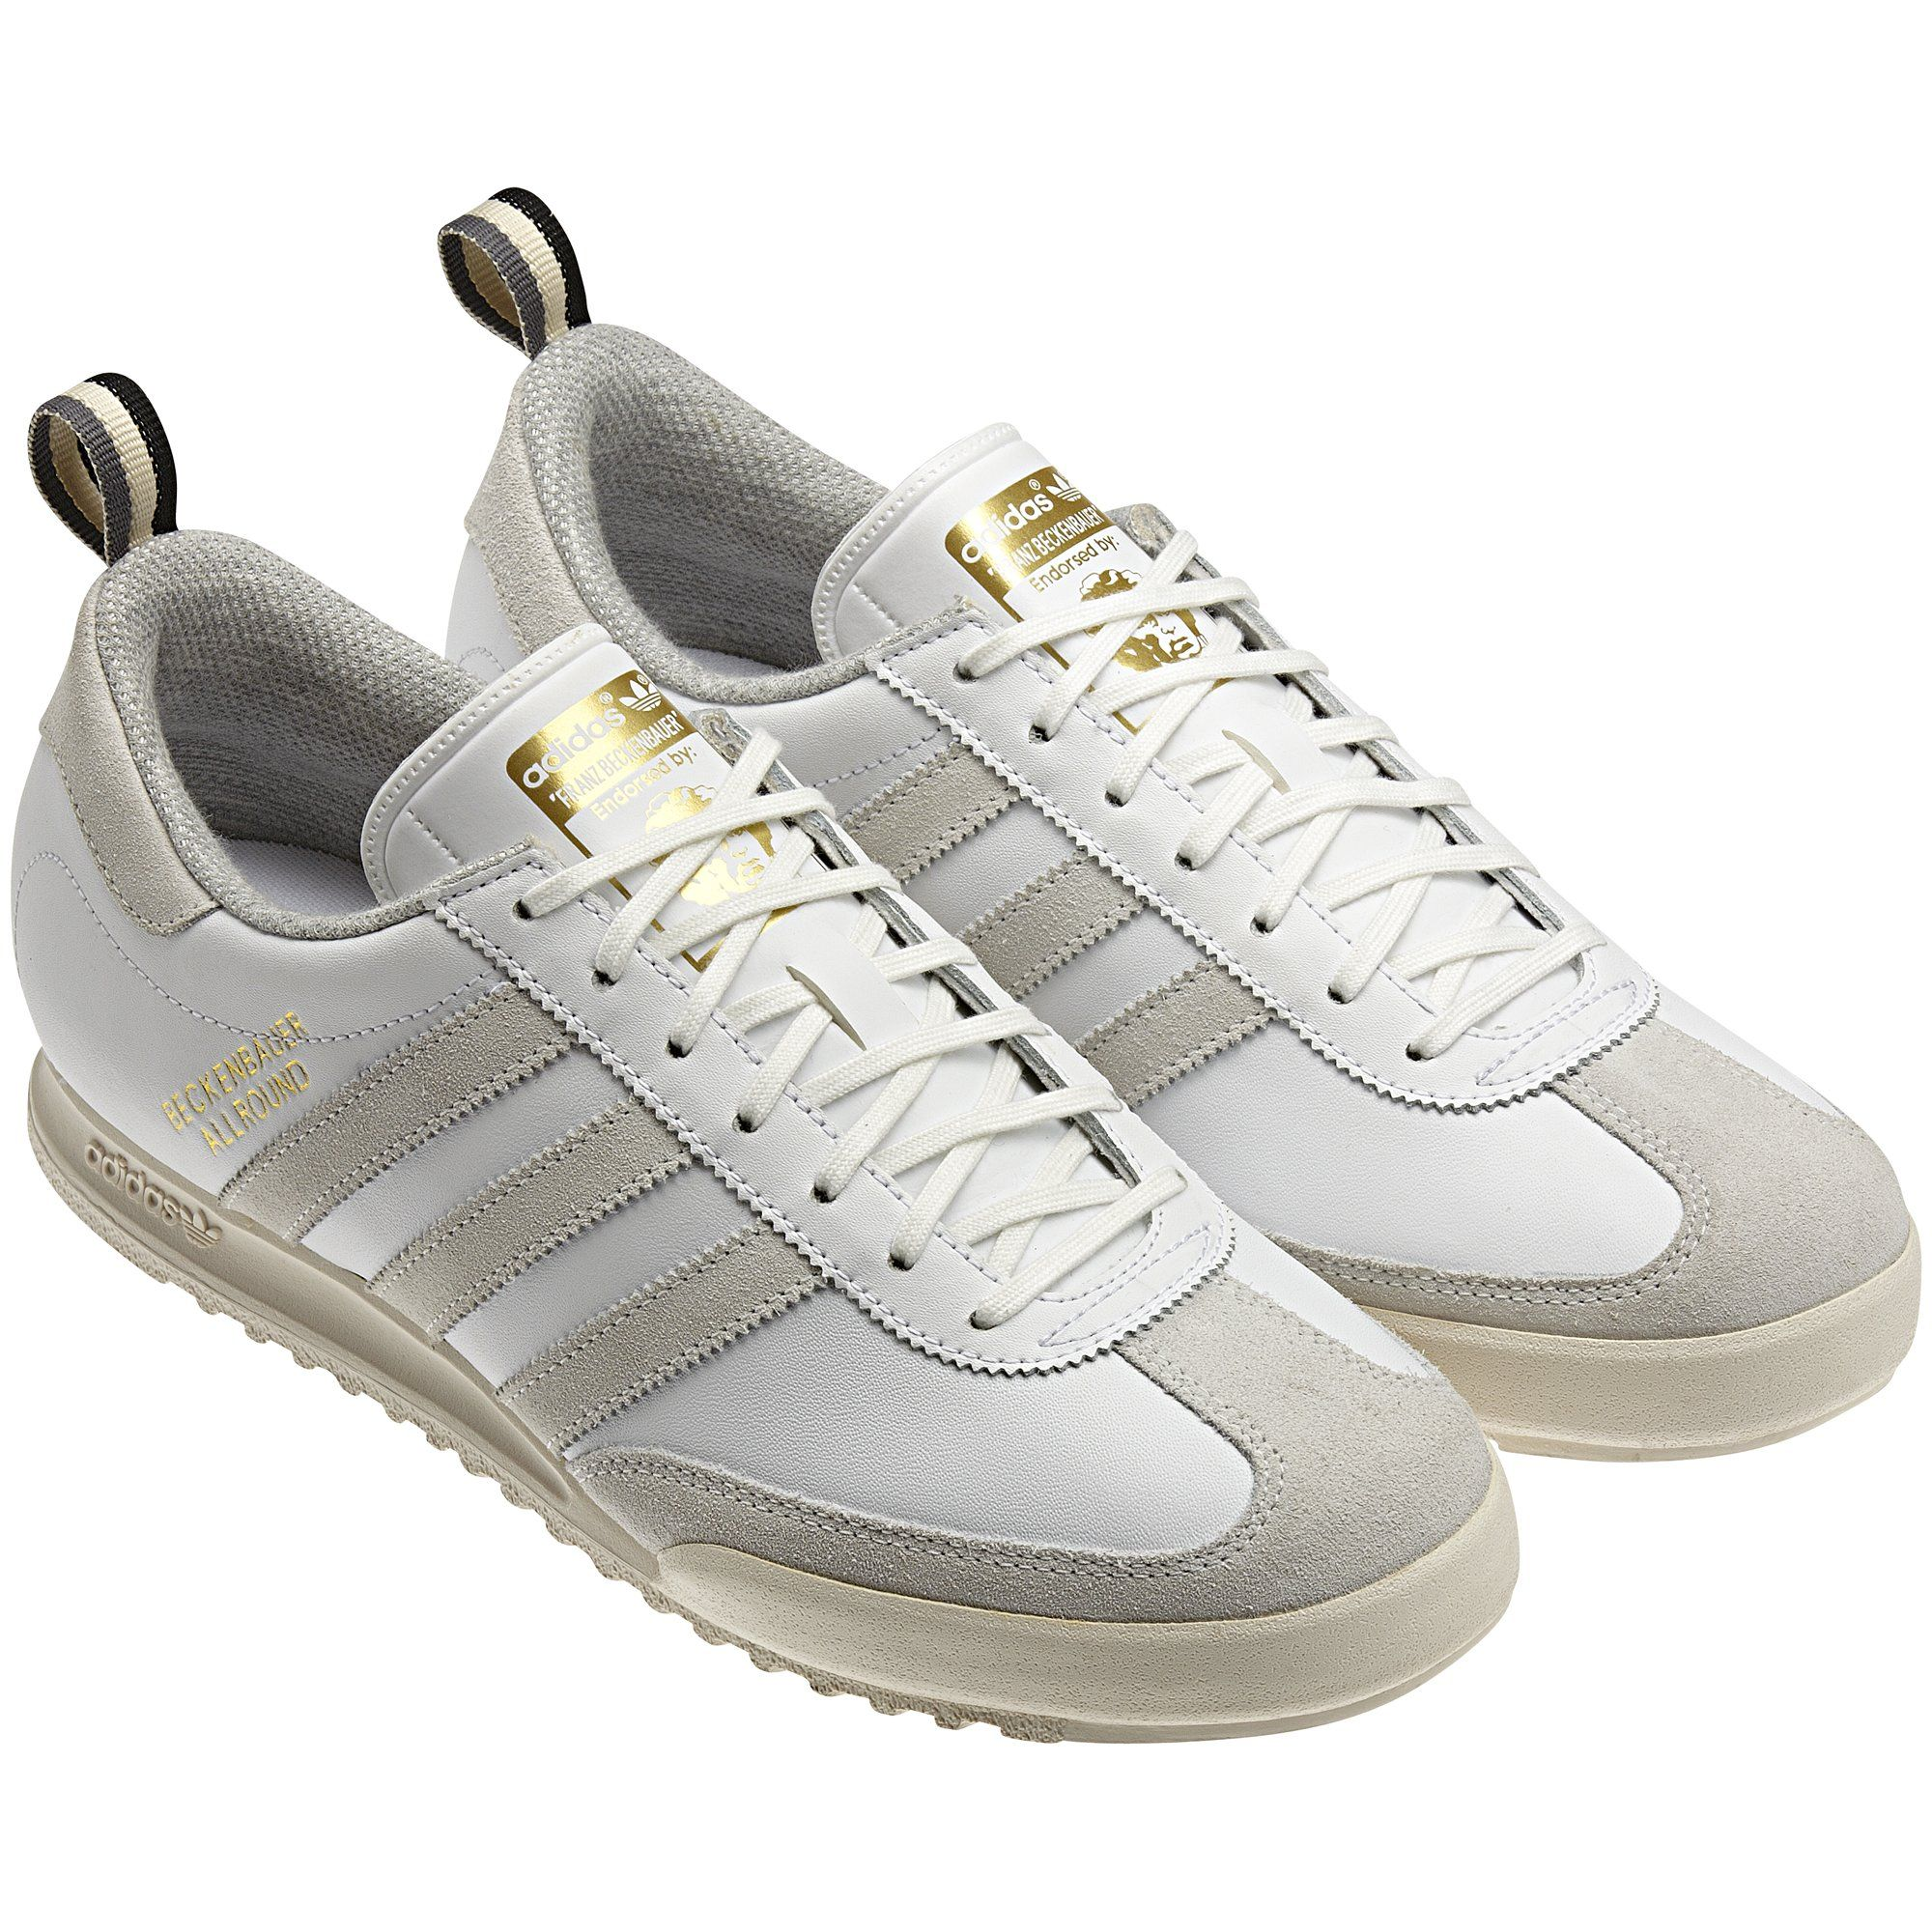 Men's Beckenbauer Shoes, White / Tech Grey / White Vapour